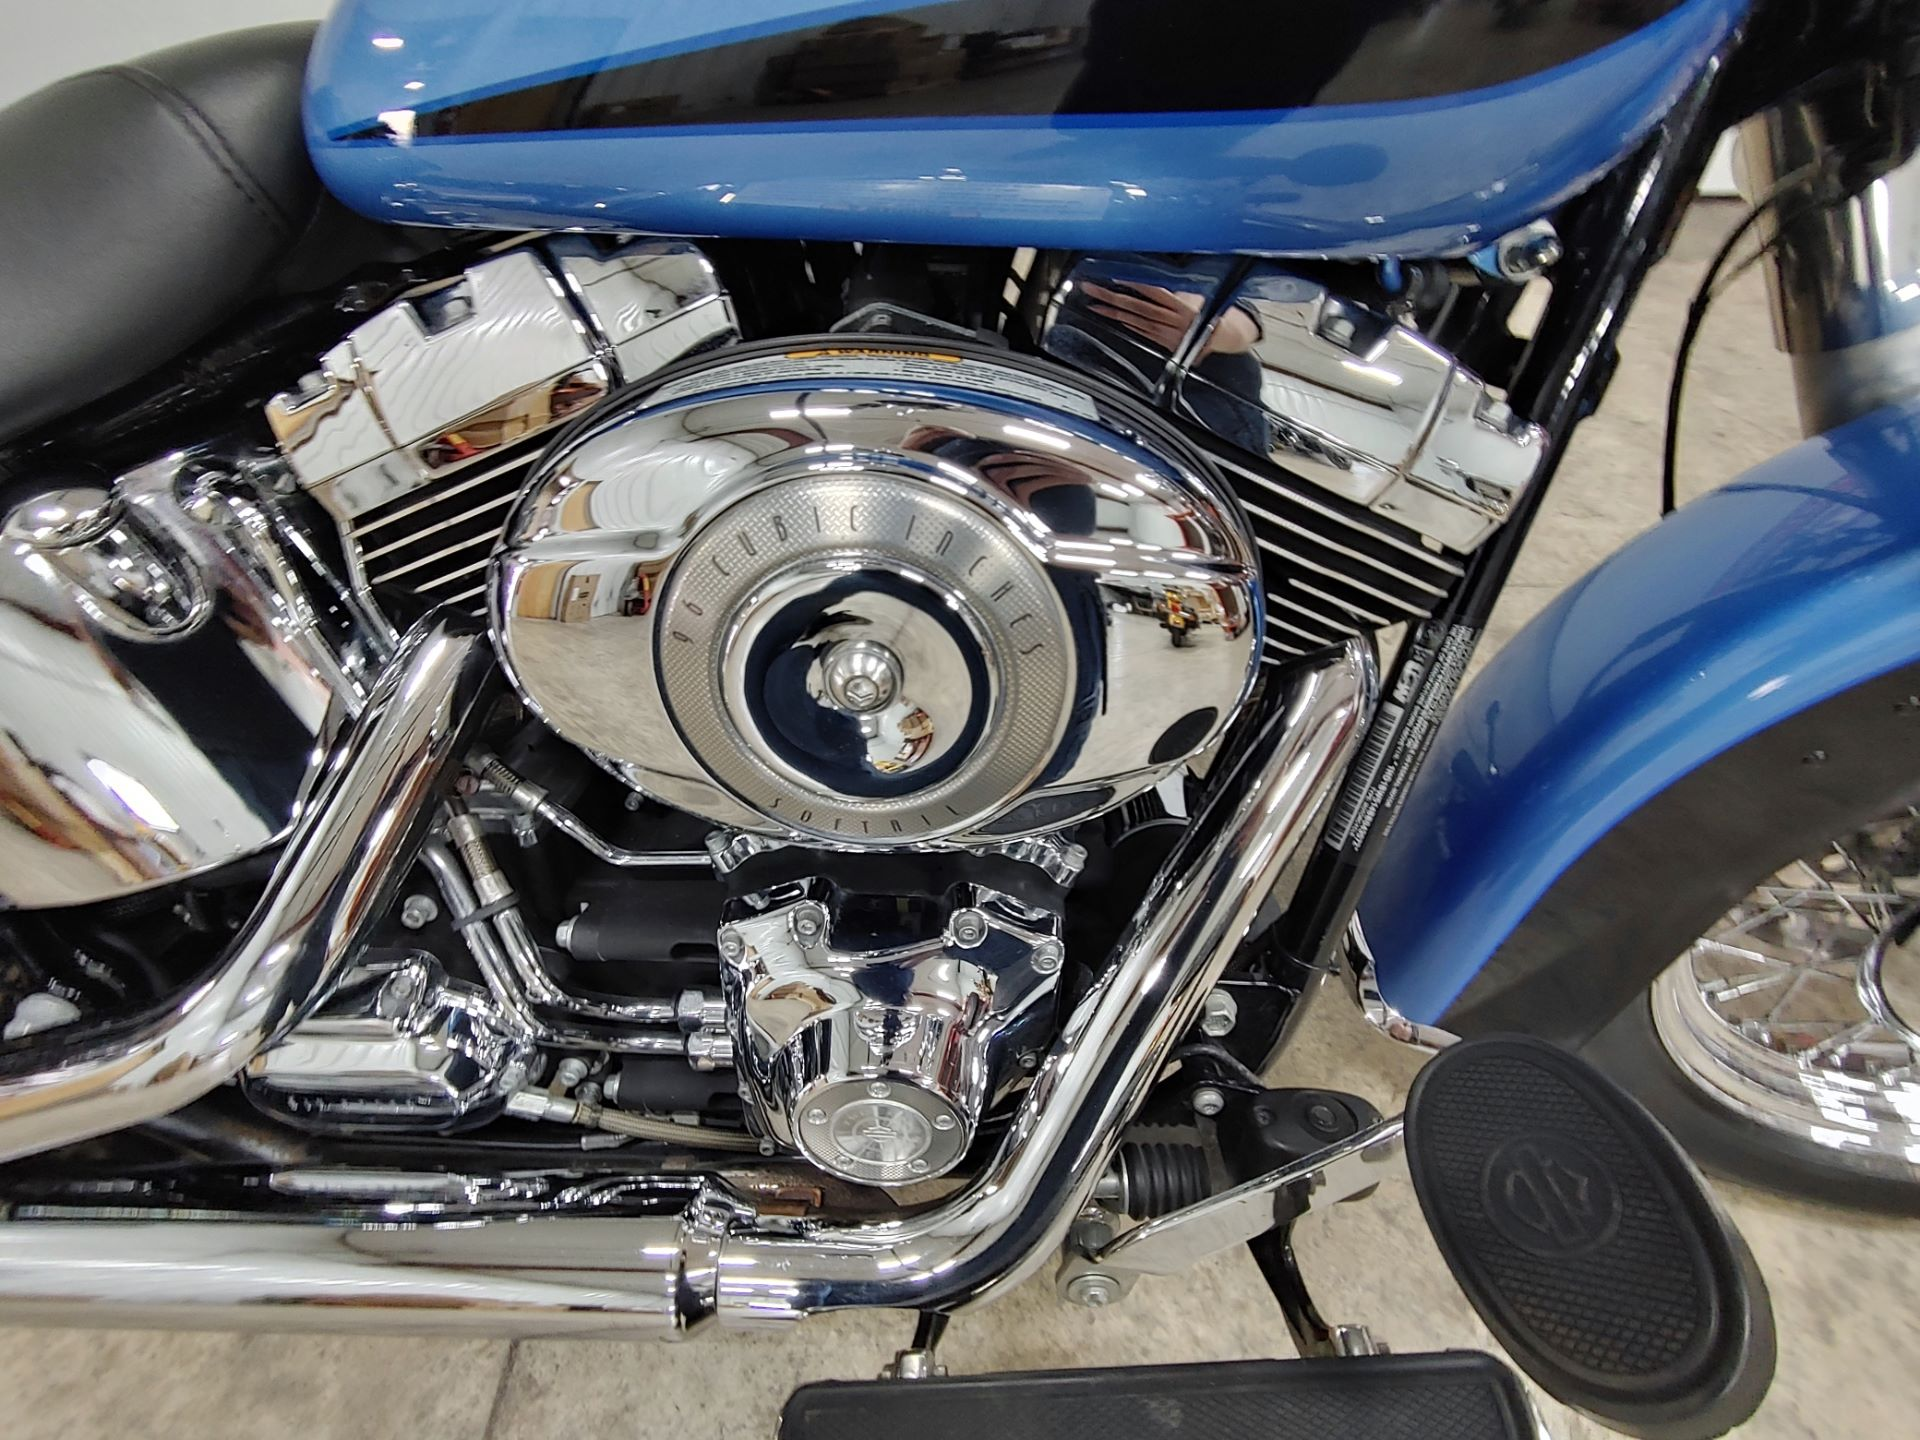 2011 Harley-Davidson Heritage Softail® Classic in Sandusky, Ohio - Photo 2